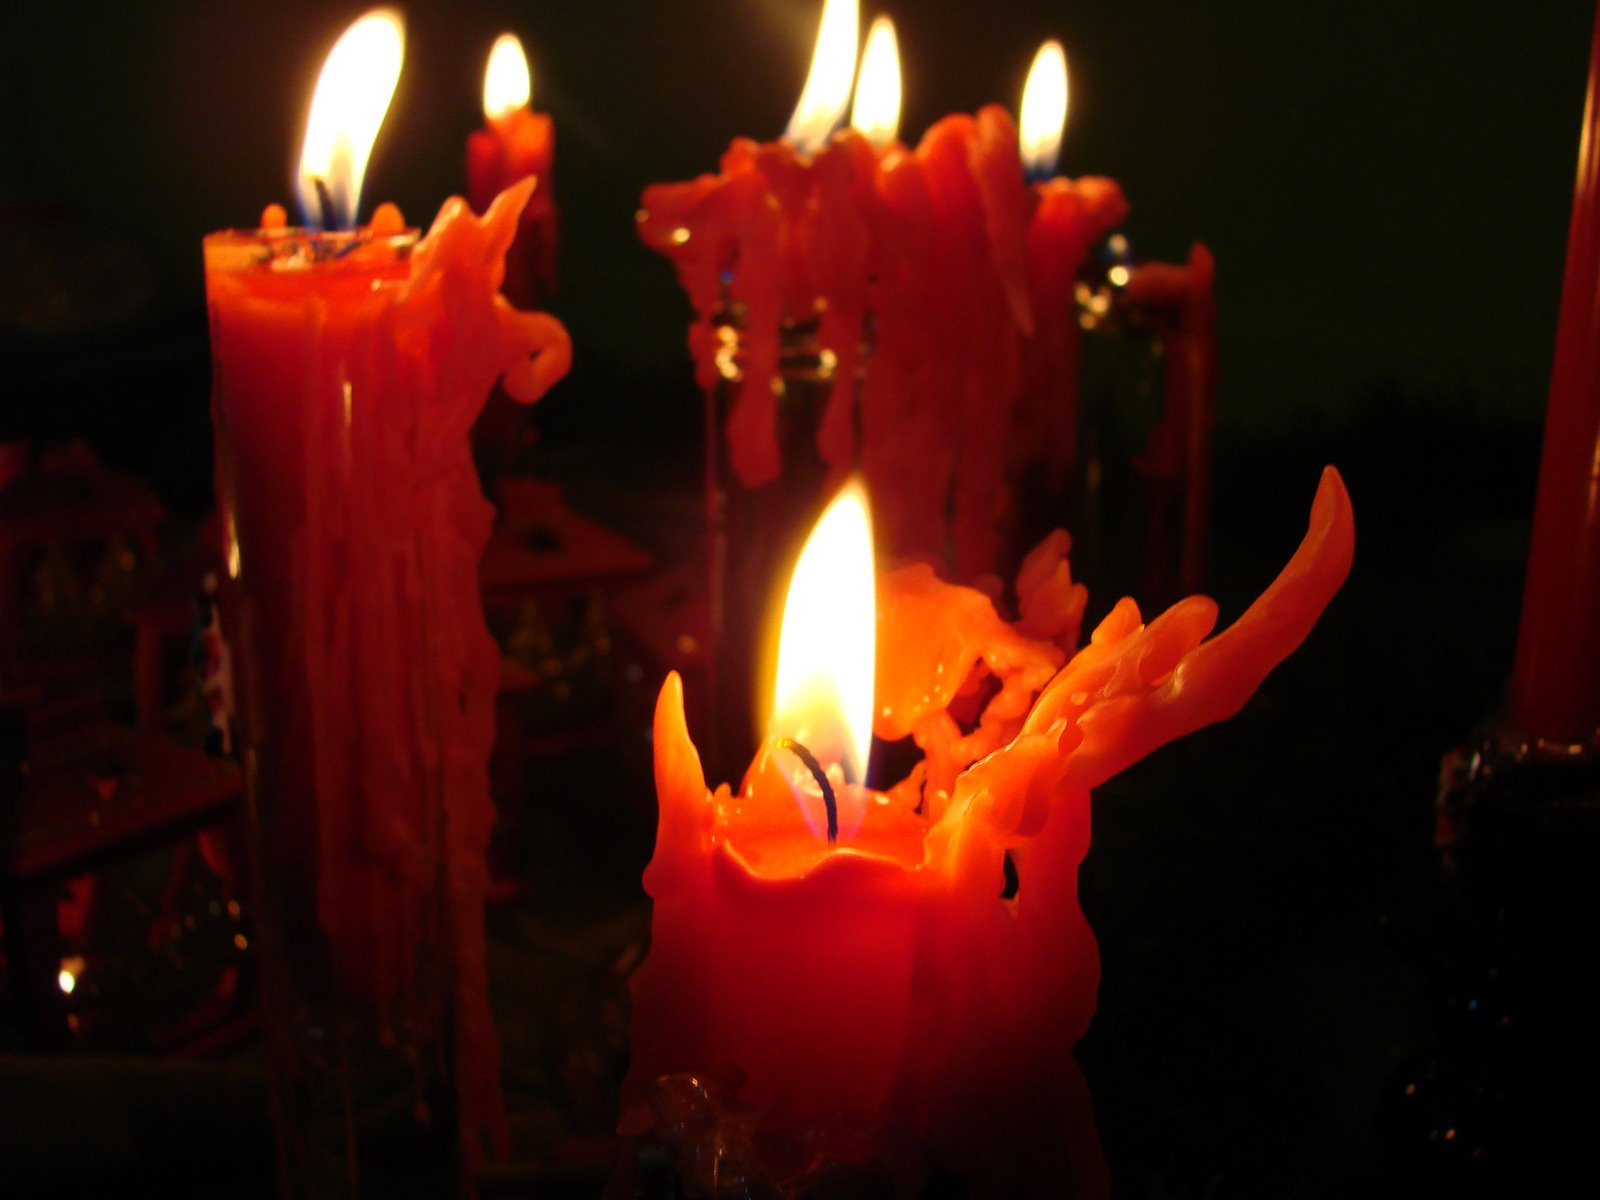 free brindi friday lighting candles and candle magic laggylife 39 s blog. Black Bedroom Furniture Sets. Home Design Ideas